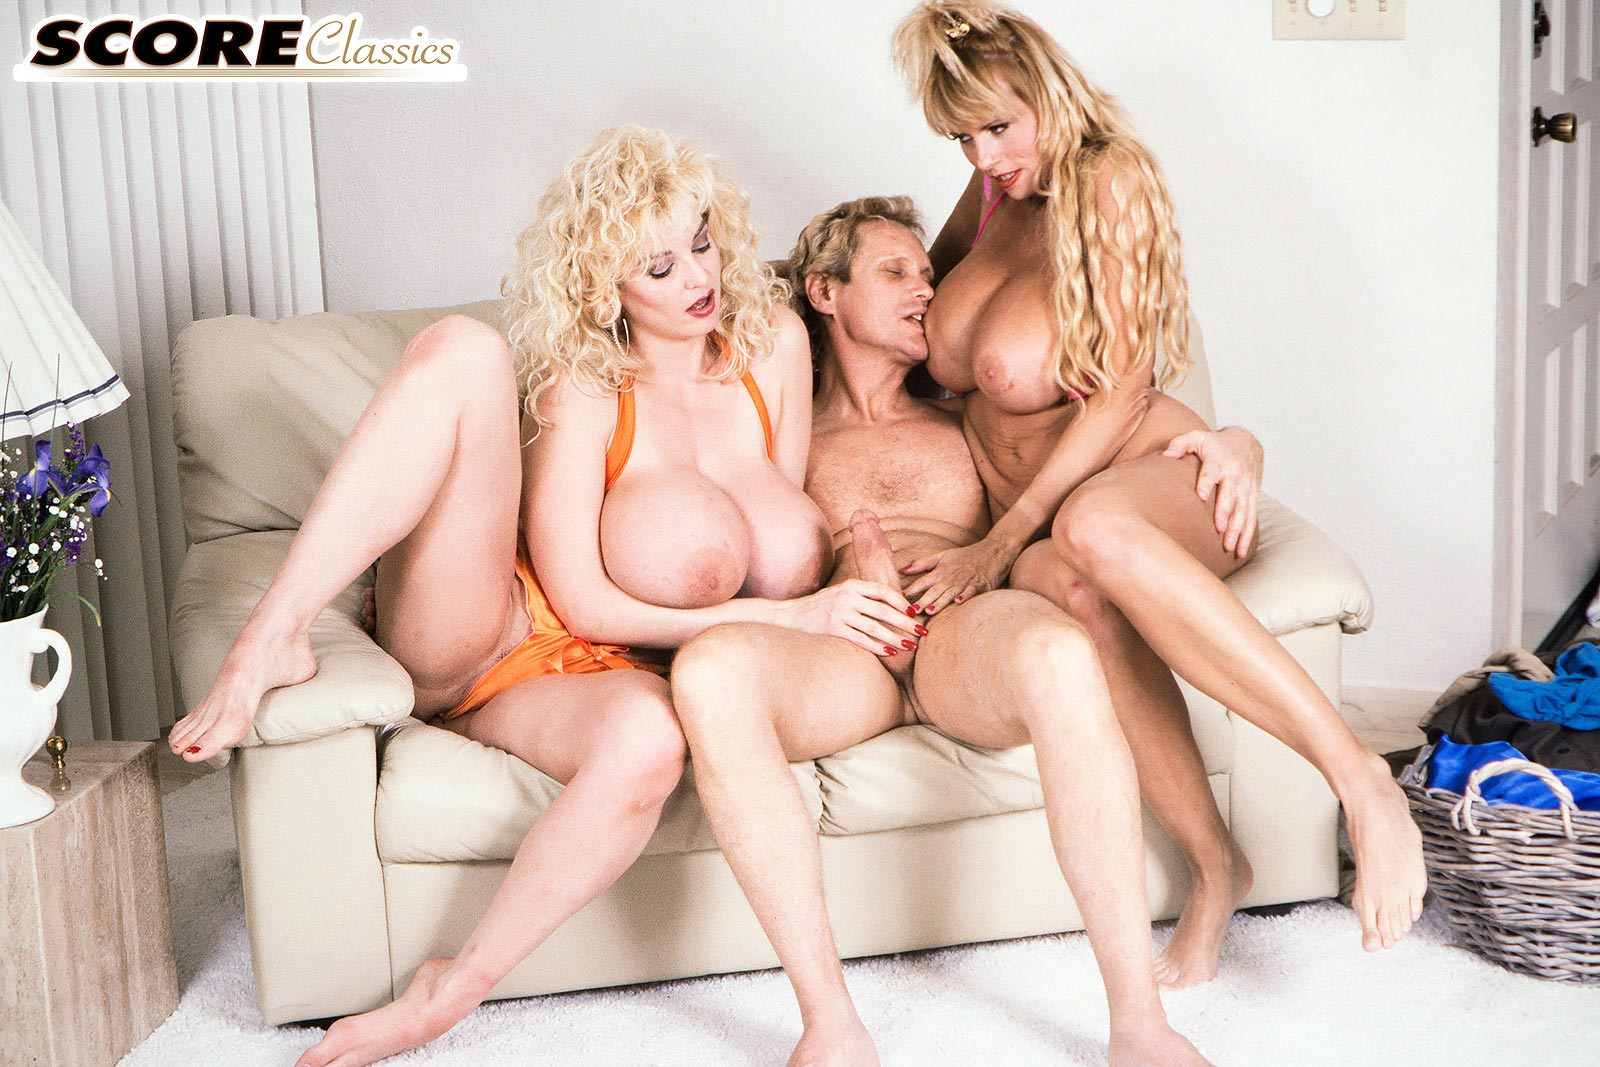 3 girls vs 15 men gangbang euro girls 9